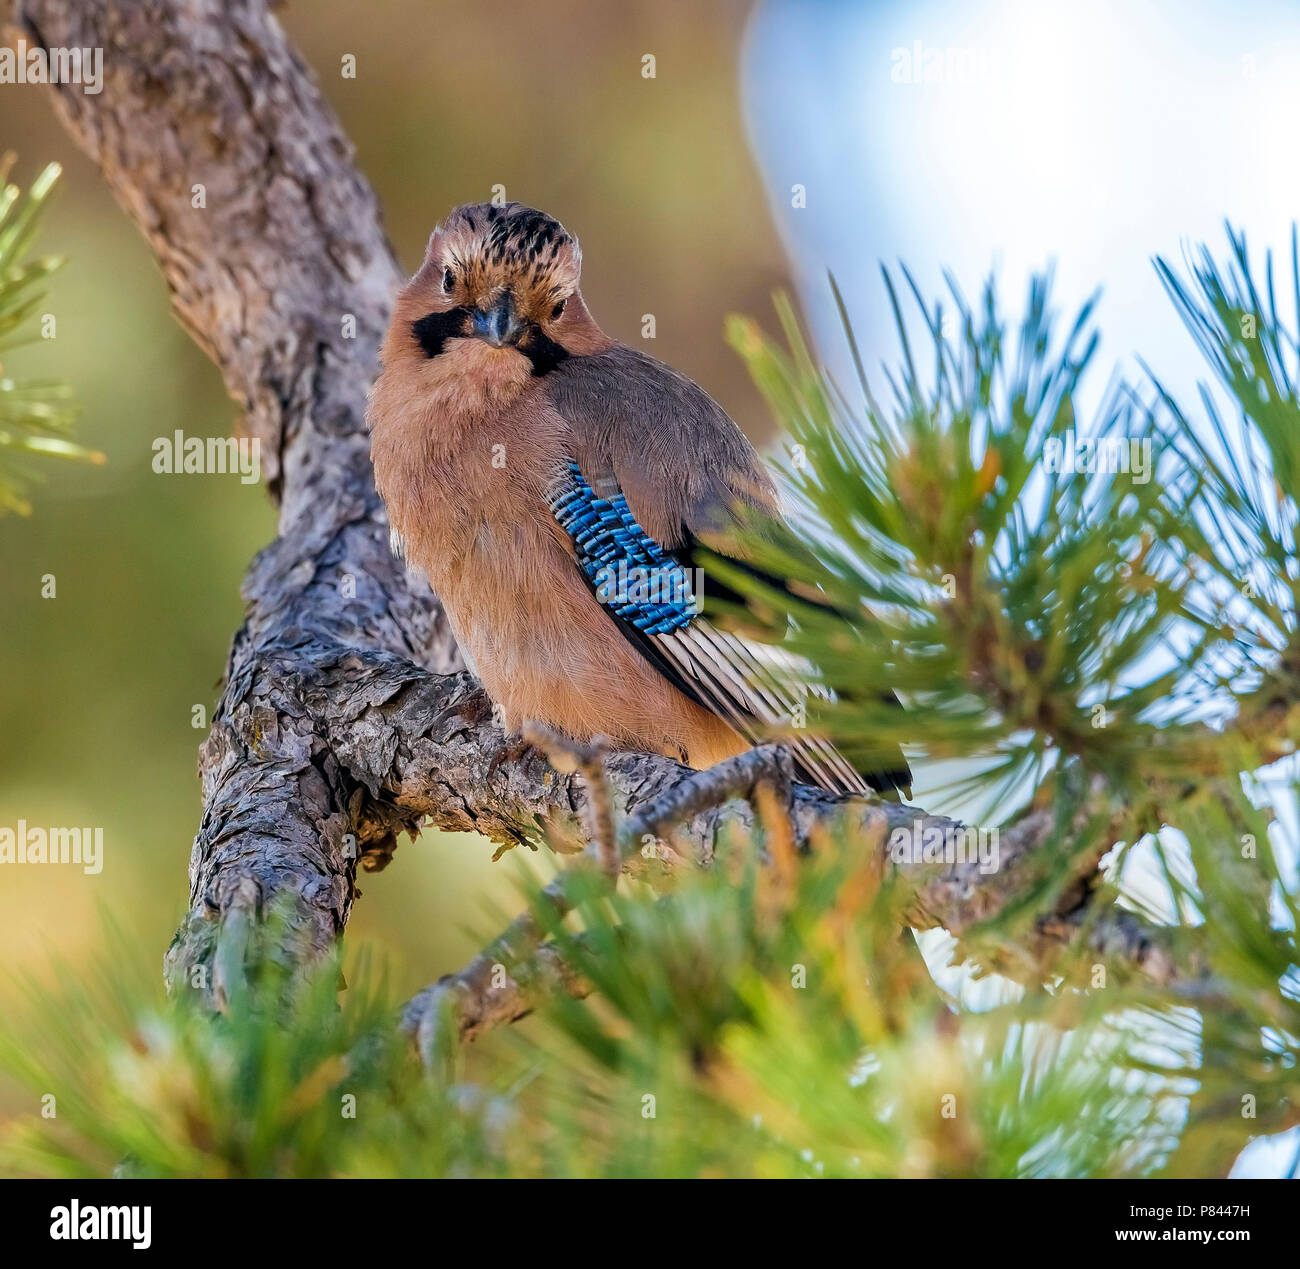 Cyprus Jay sitting on a branch in Troodos, Cyprus. June 2015. Stock Photo